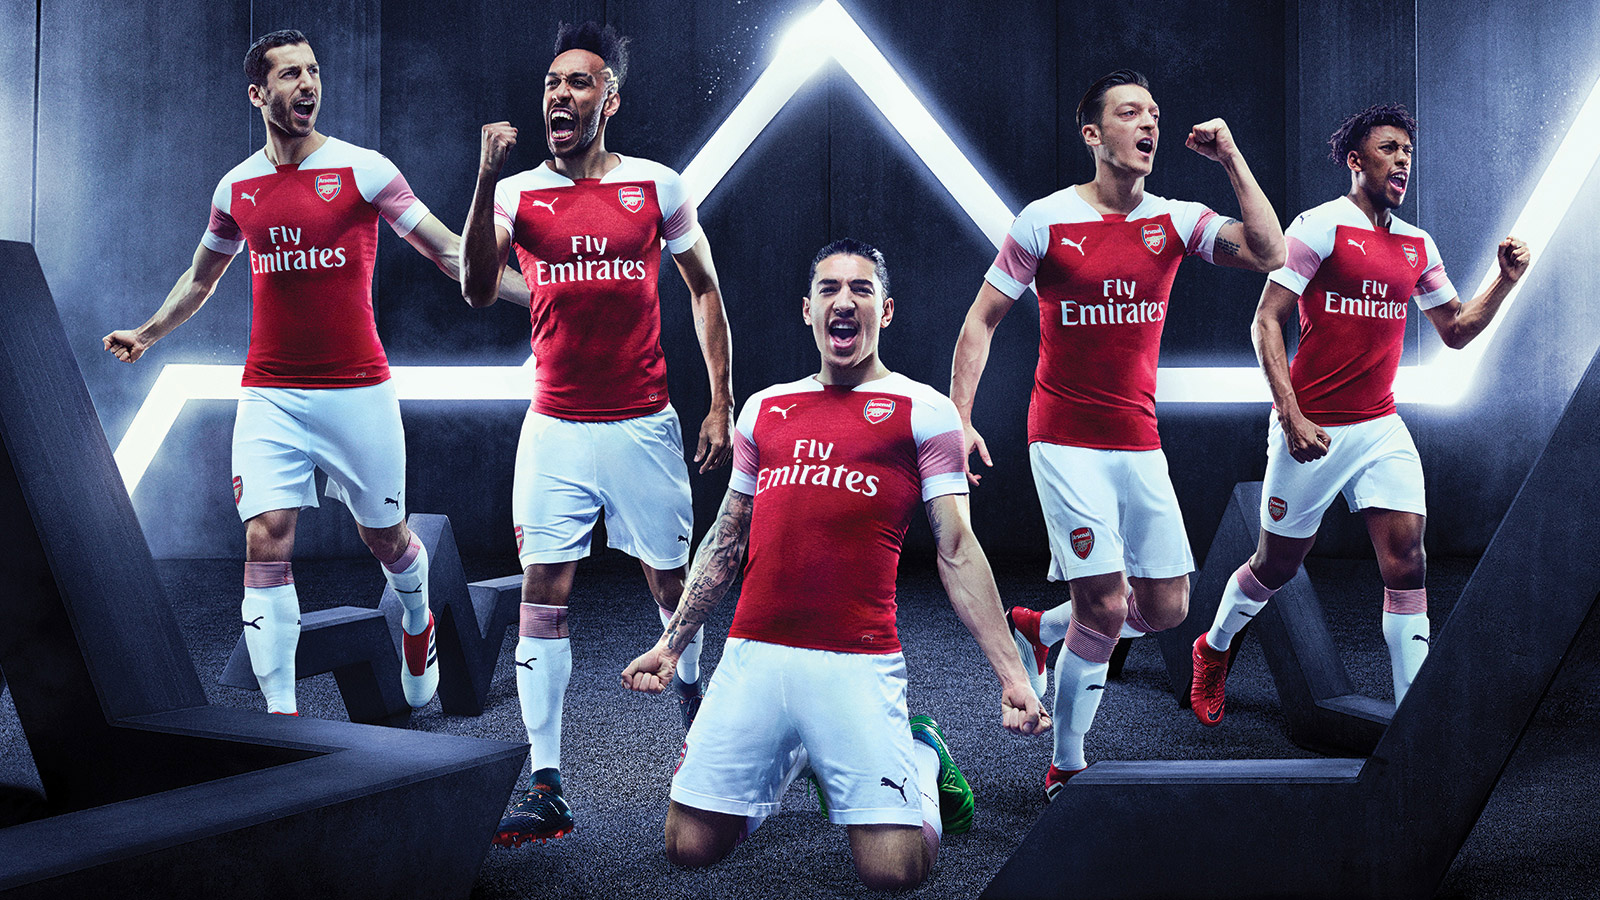 Arsenal Gallery: Arsenal And PUMA Unveil 2018/19 Home Kit